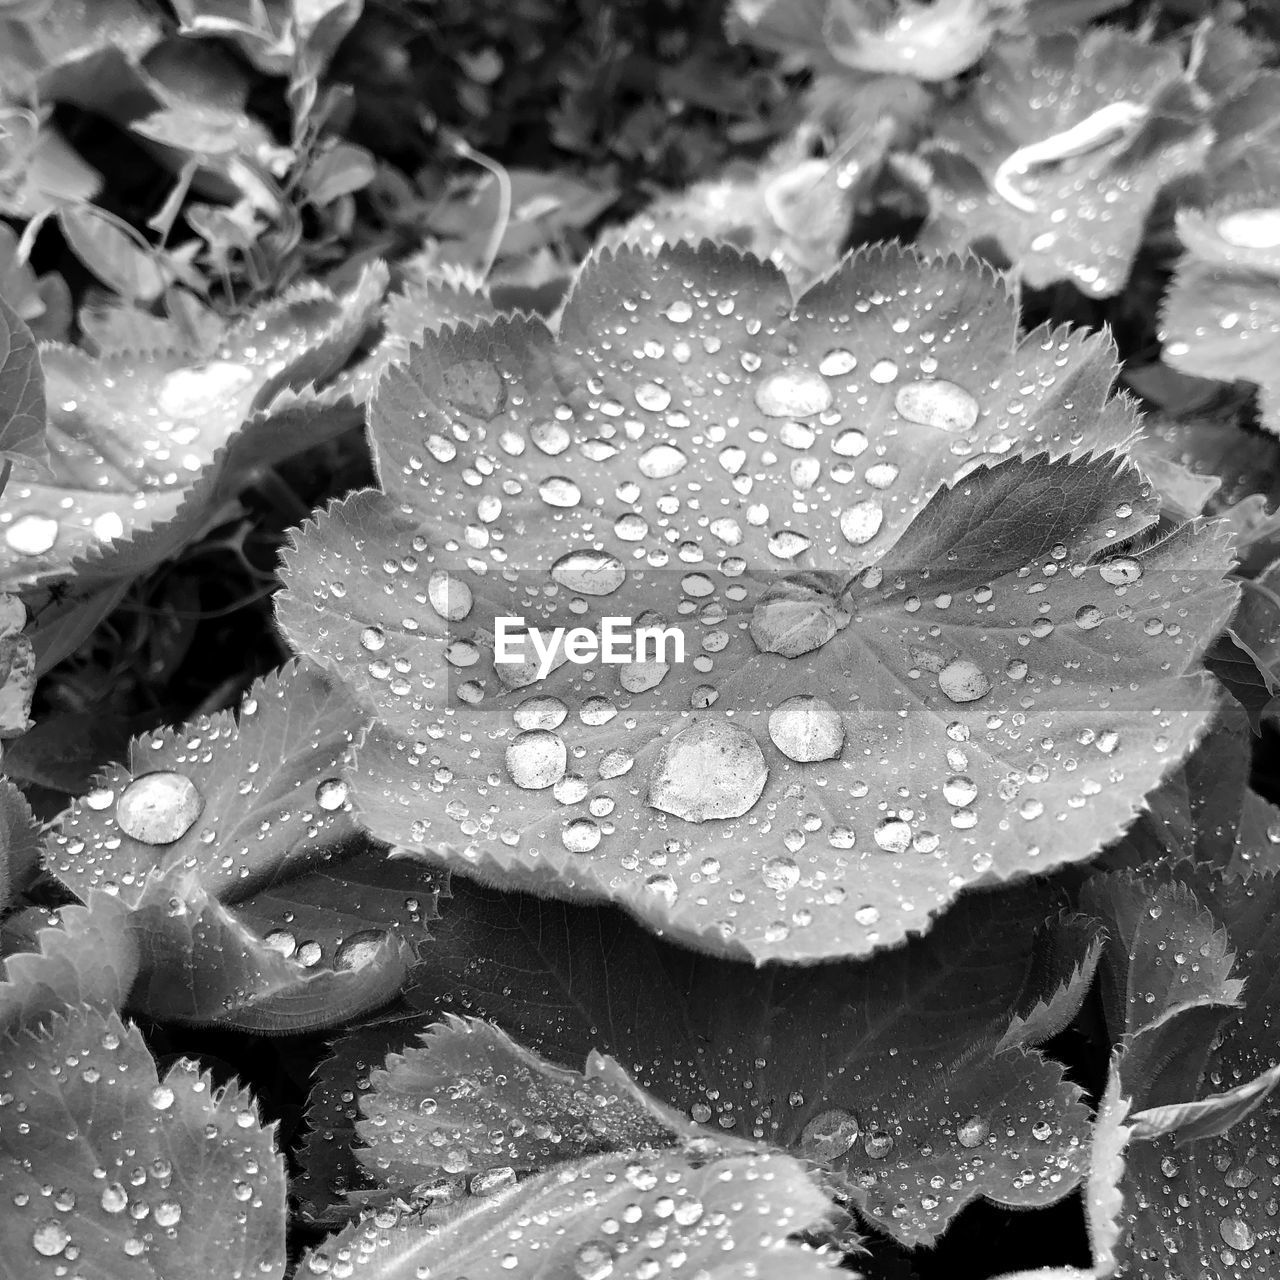 water, drop, beauty in nature, growth, plant, wet, close-up, freshness, nature, fragility, no people, vulnerability, flower, plant part, leaf, day, flower head, outdoors, rain, purity, dew, raindrop, leaves